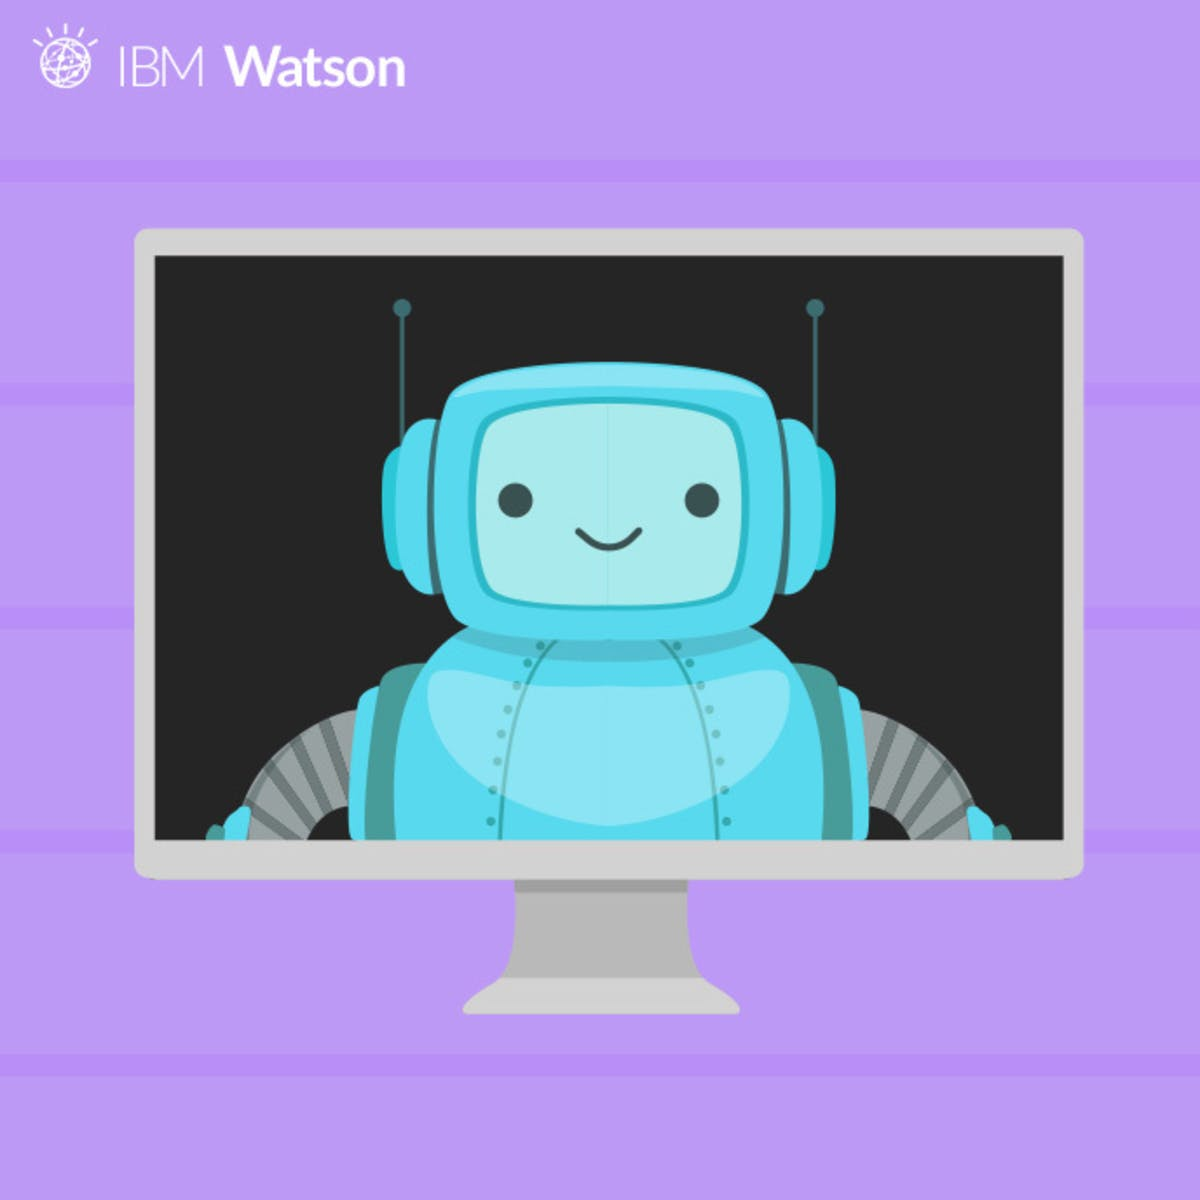 How to Build a Chatbot Without Coding